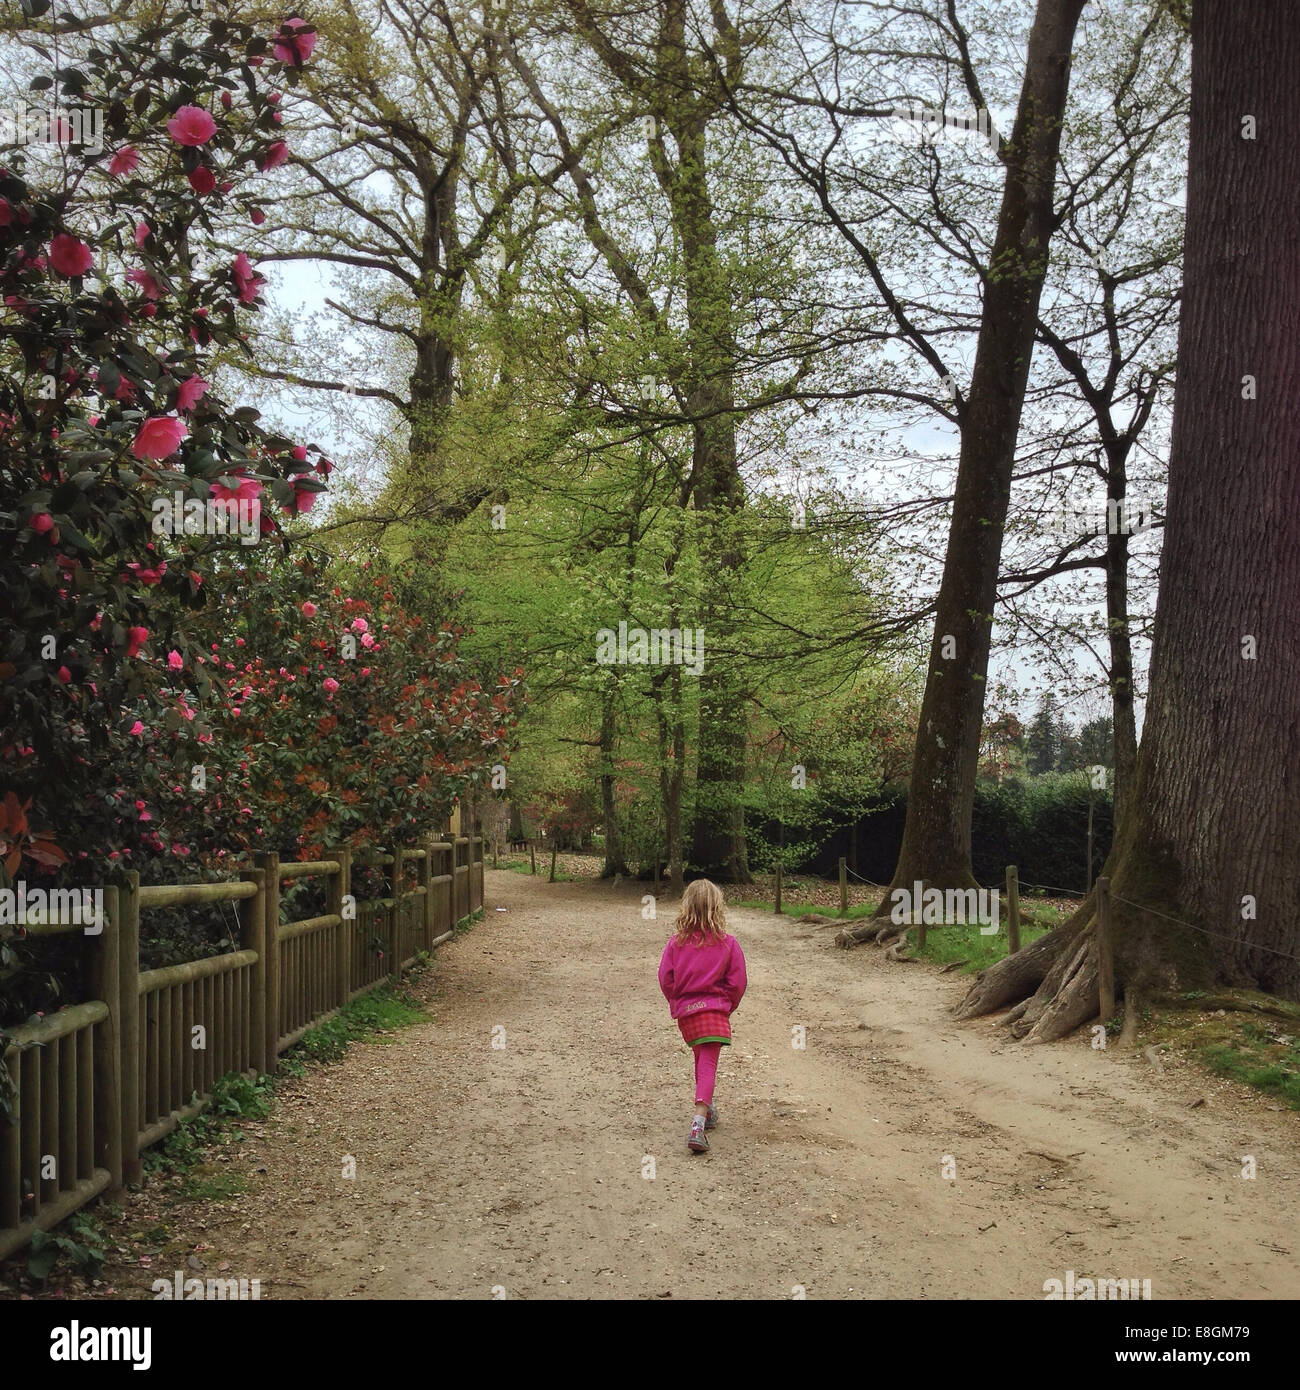 France, Ile-de-France, Yvelines, Rambouillet, Thoiry, Girl (12-13) in park - Stock Image